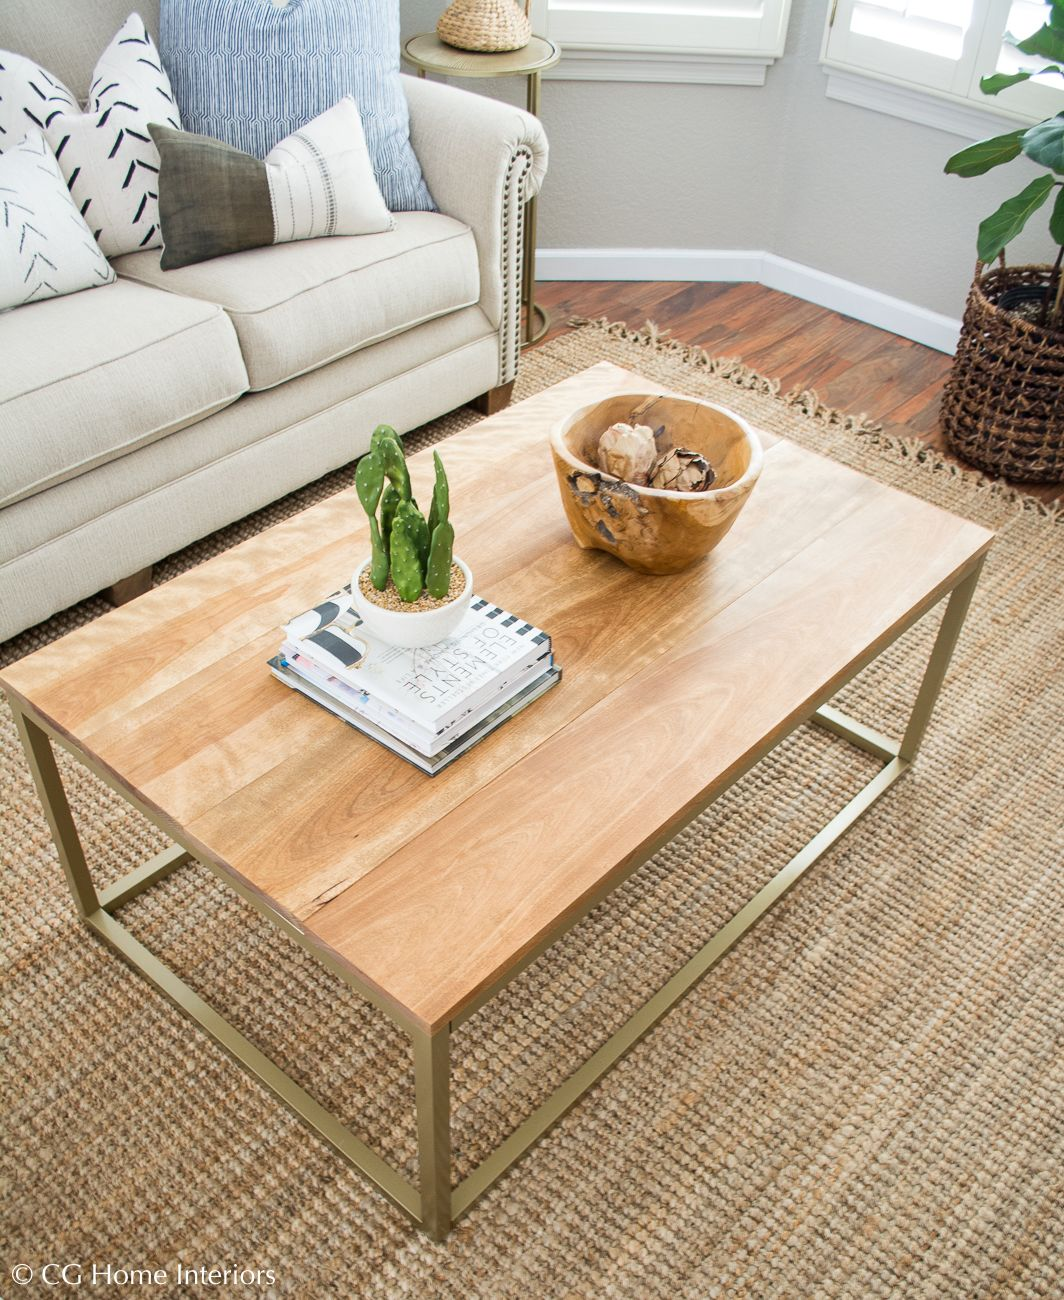 Diy Gold And Wood Coffee Table Wood Coffee Table Diy Gold Wood Gold Coffee Table